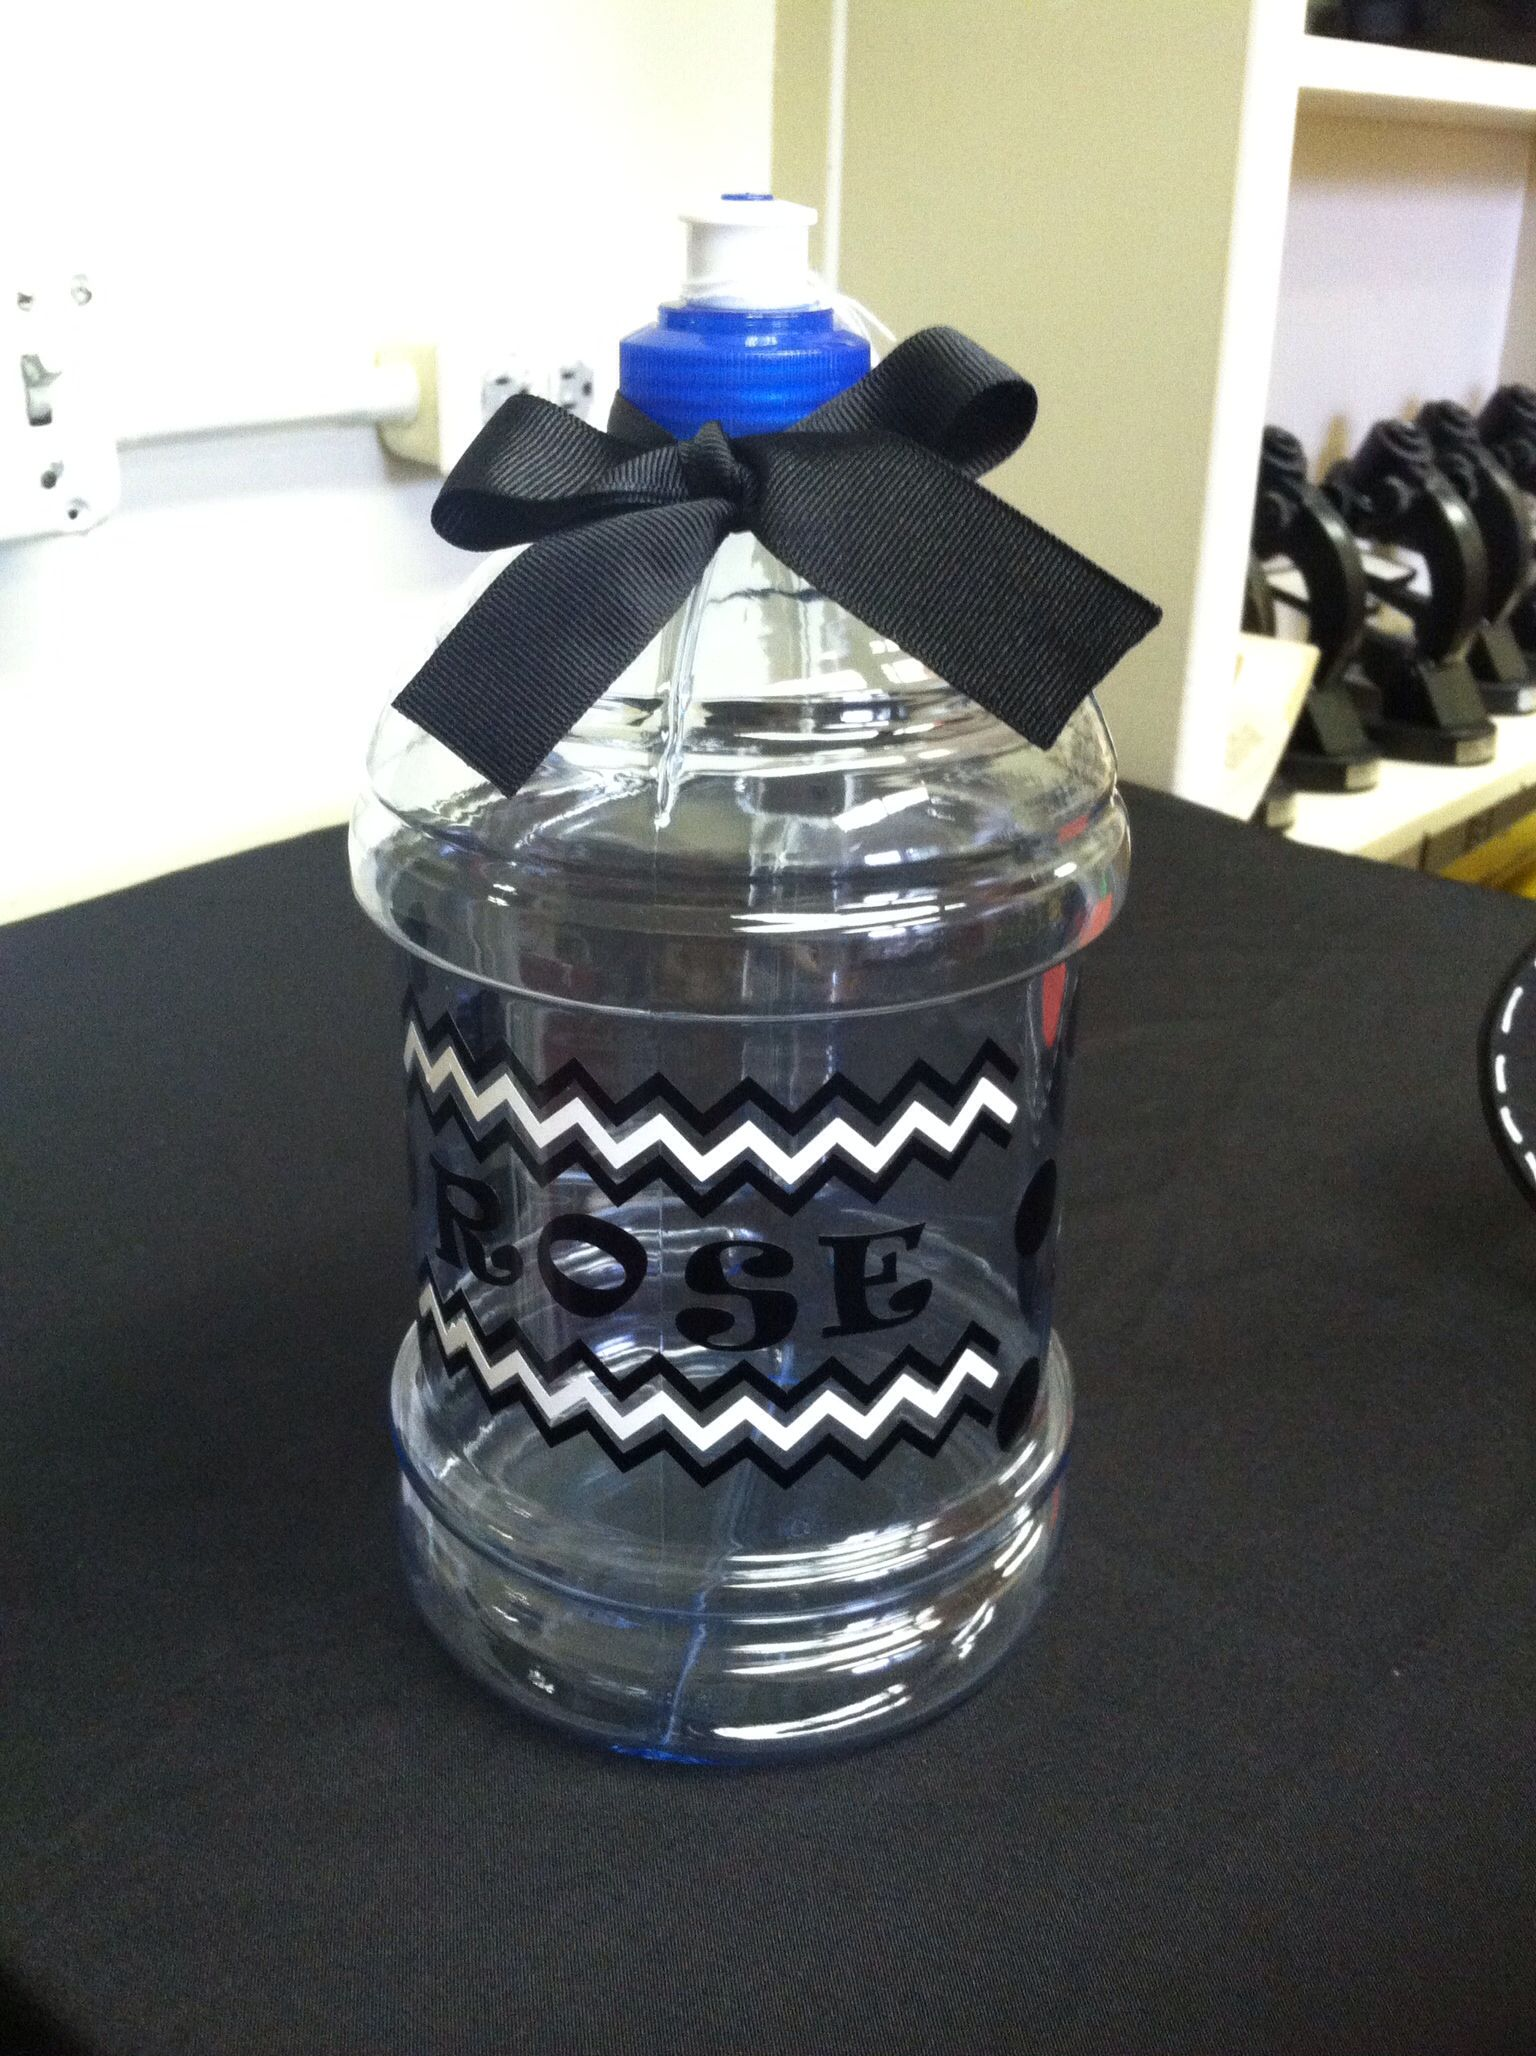 Water Jug With Vinyl Stickers Made With My Silhouette - Where to get vinyl stickers made